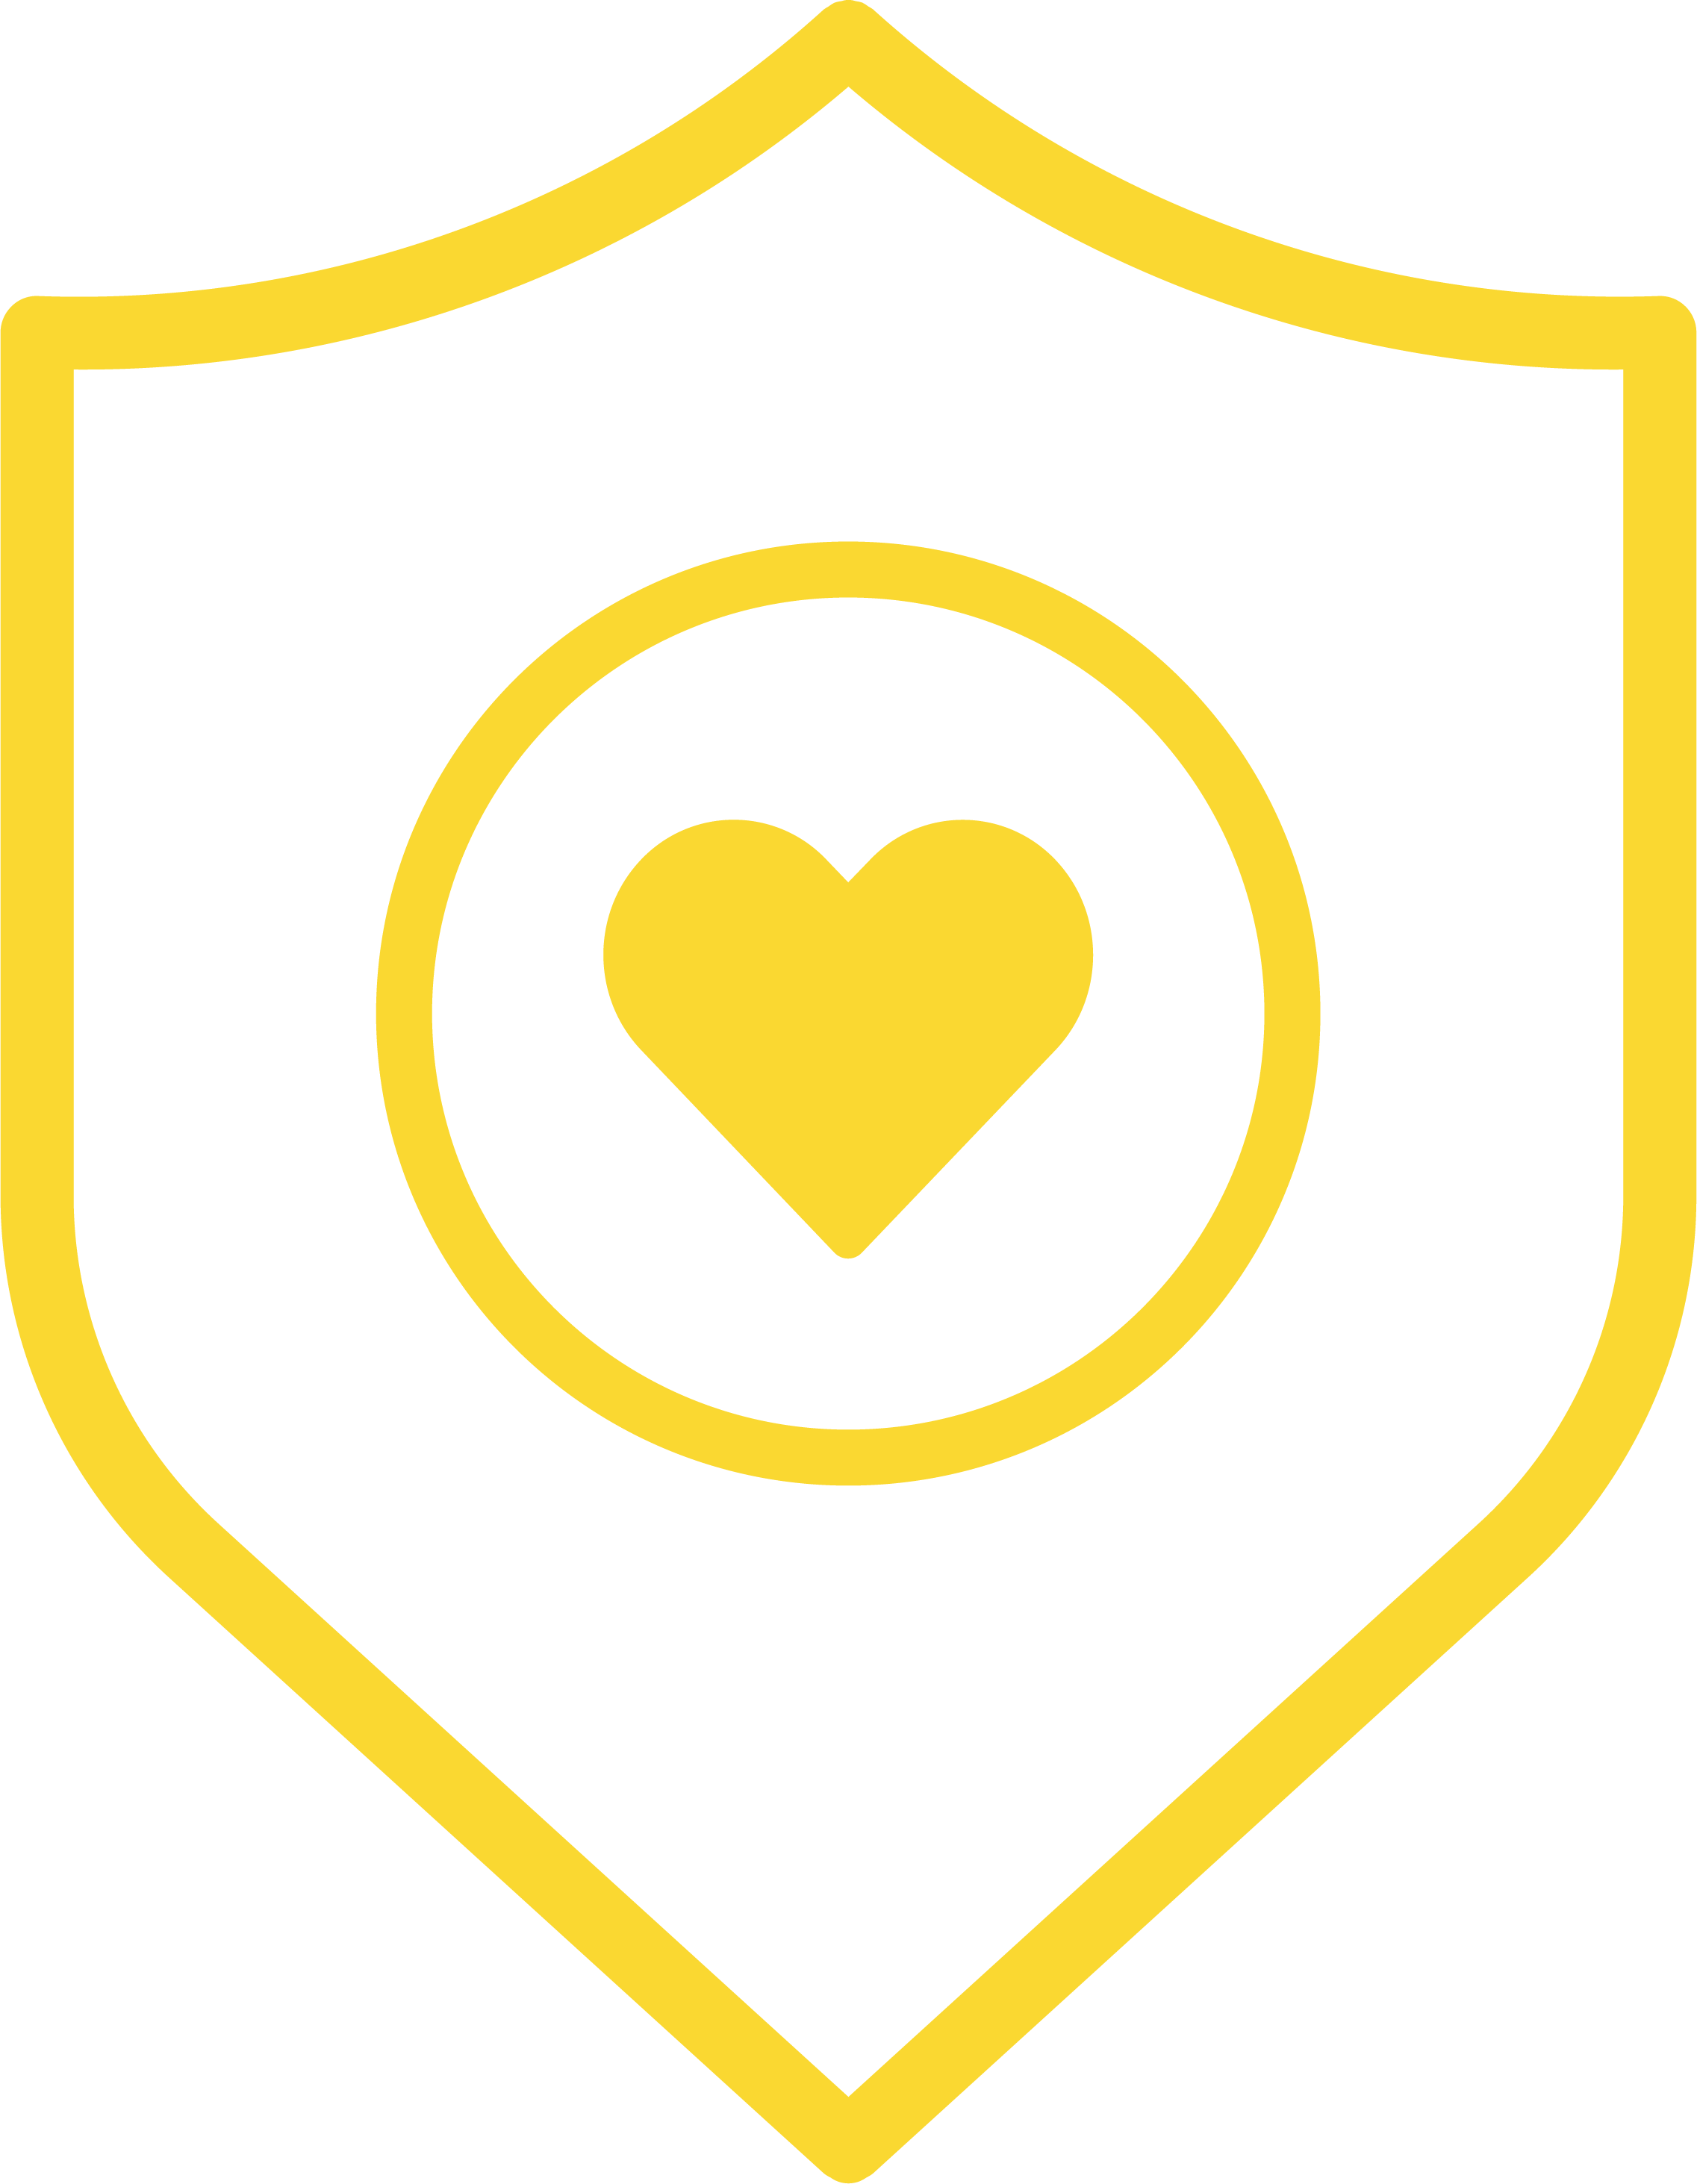 shield icon with a heart